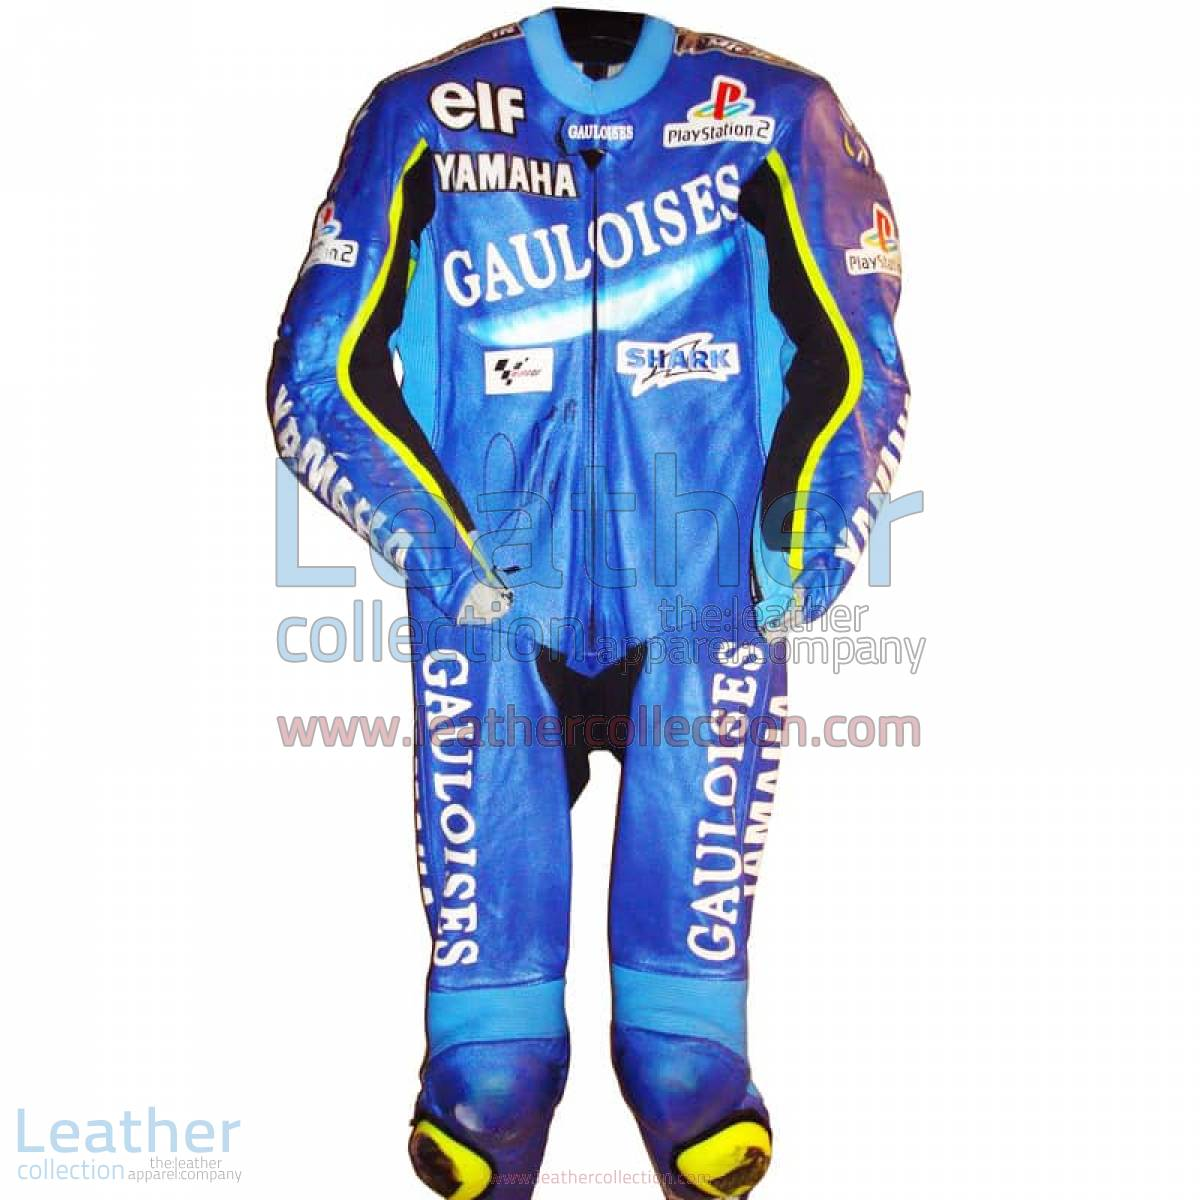 Olivier Jacque Yamaha GP 2002 Racing Leathers | Yamaha racing leathers